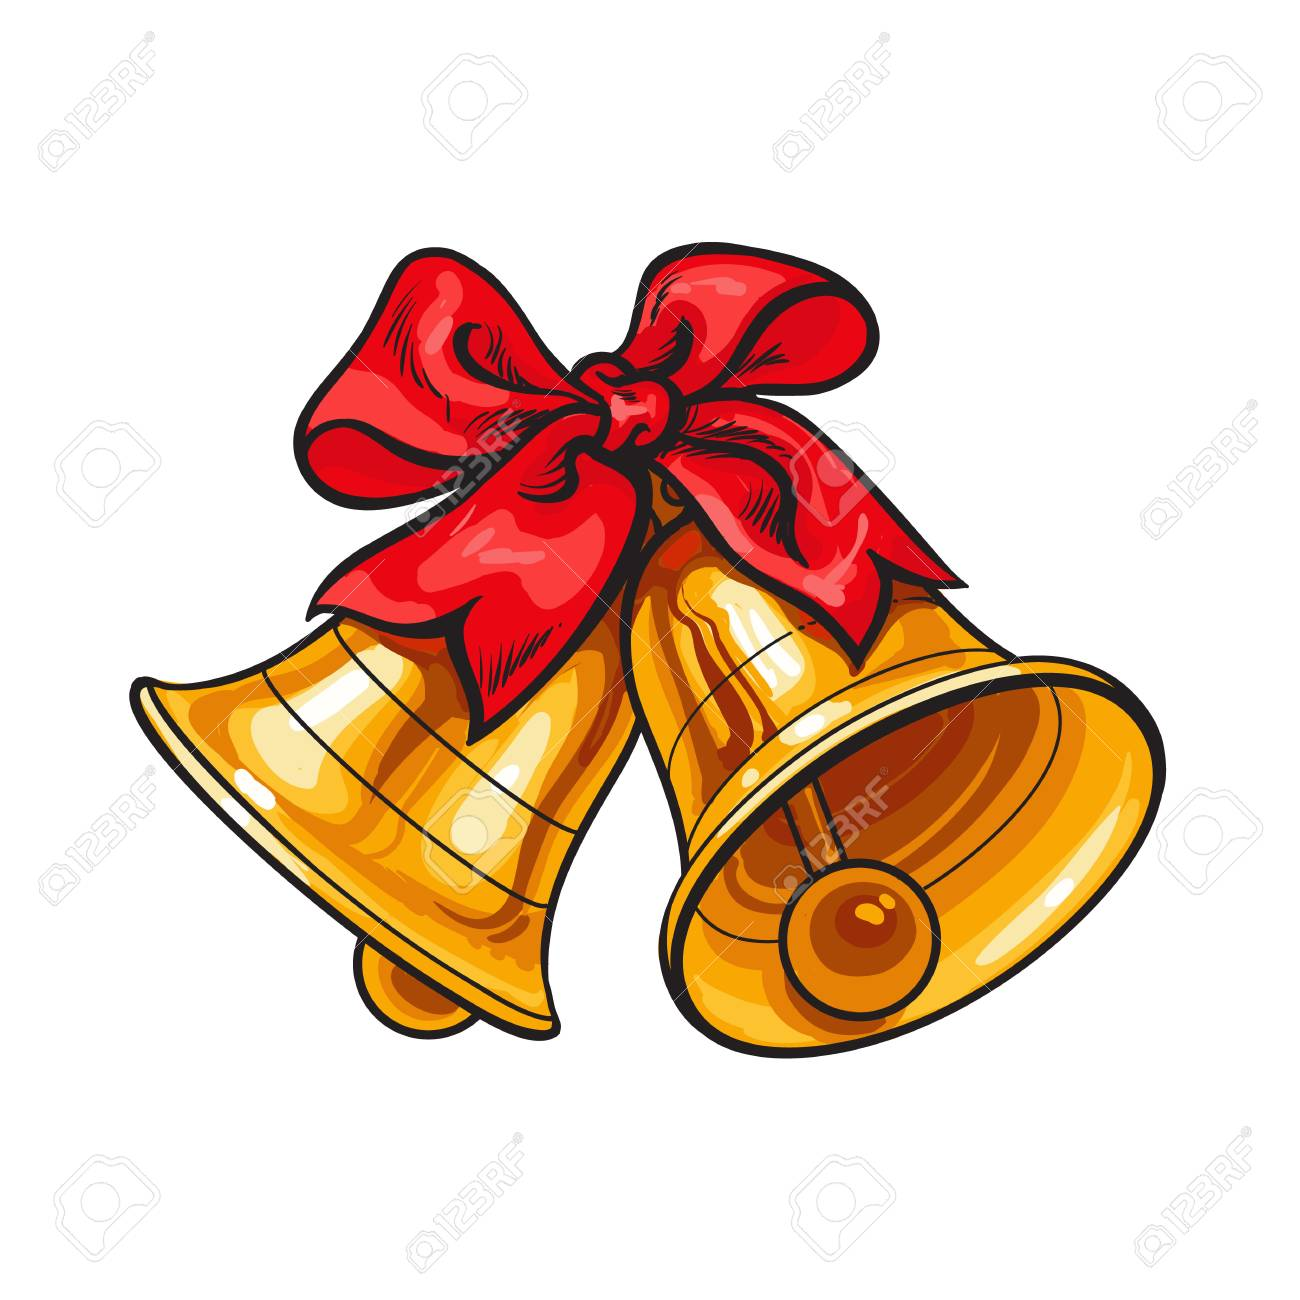 Christmas Bells Images.Golden Christmas Bells With A Red Bow Cartoon Vector Illustration